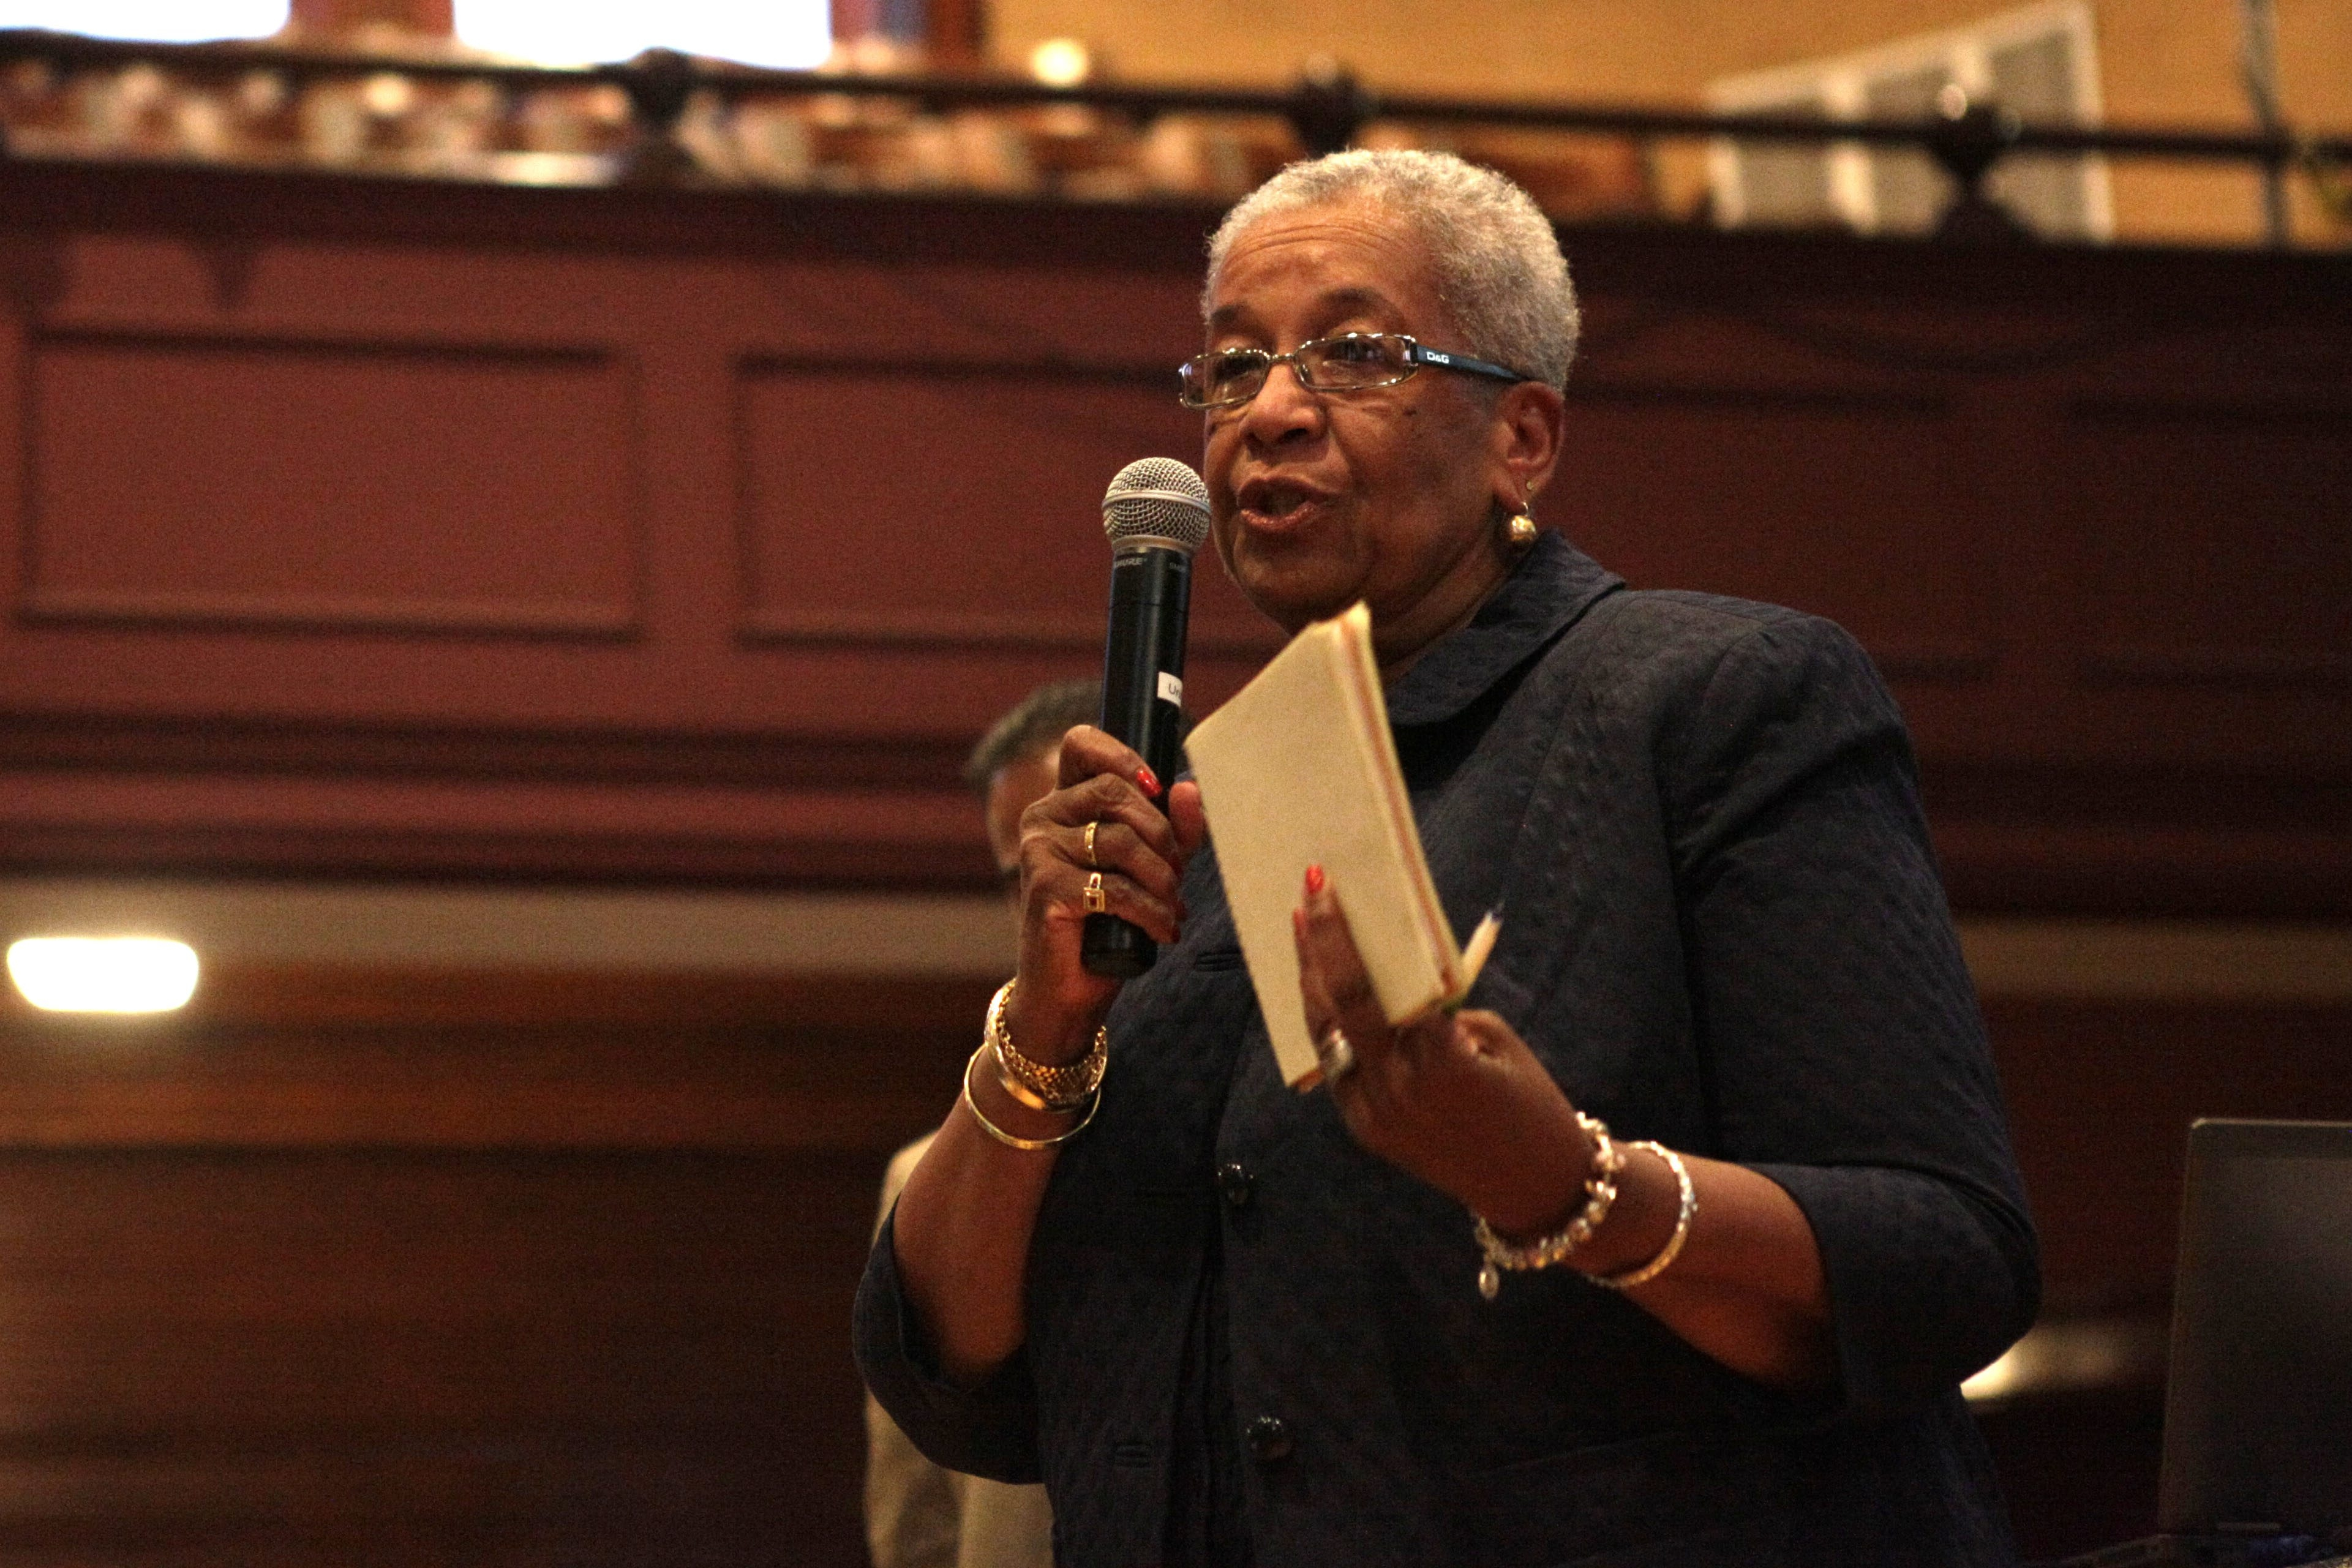 Barbara Seals Nevergold has been serving on the Buffalo Board of Education since January 2012.